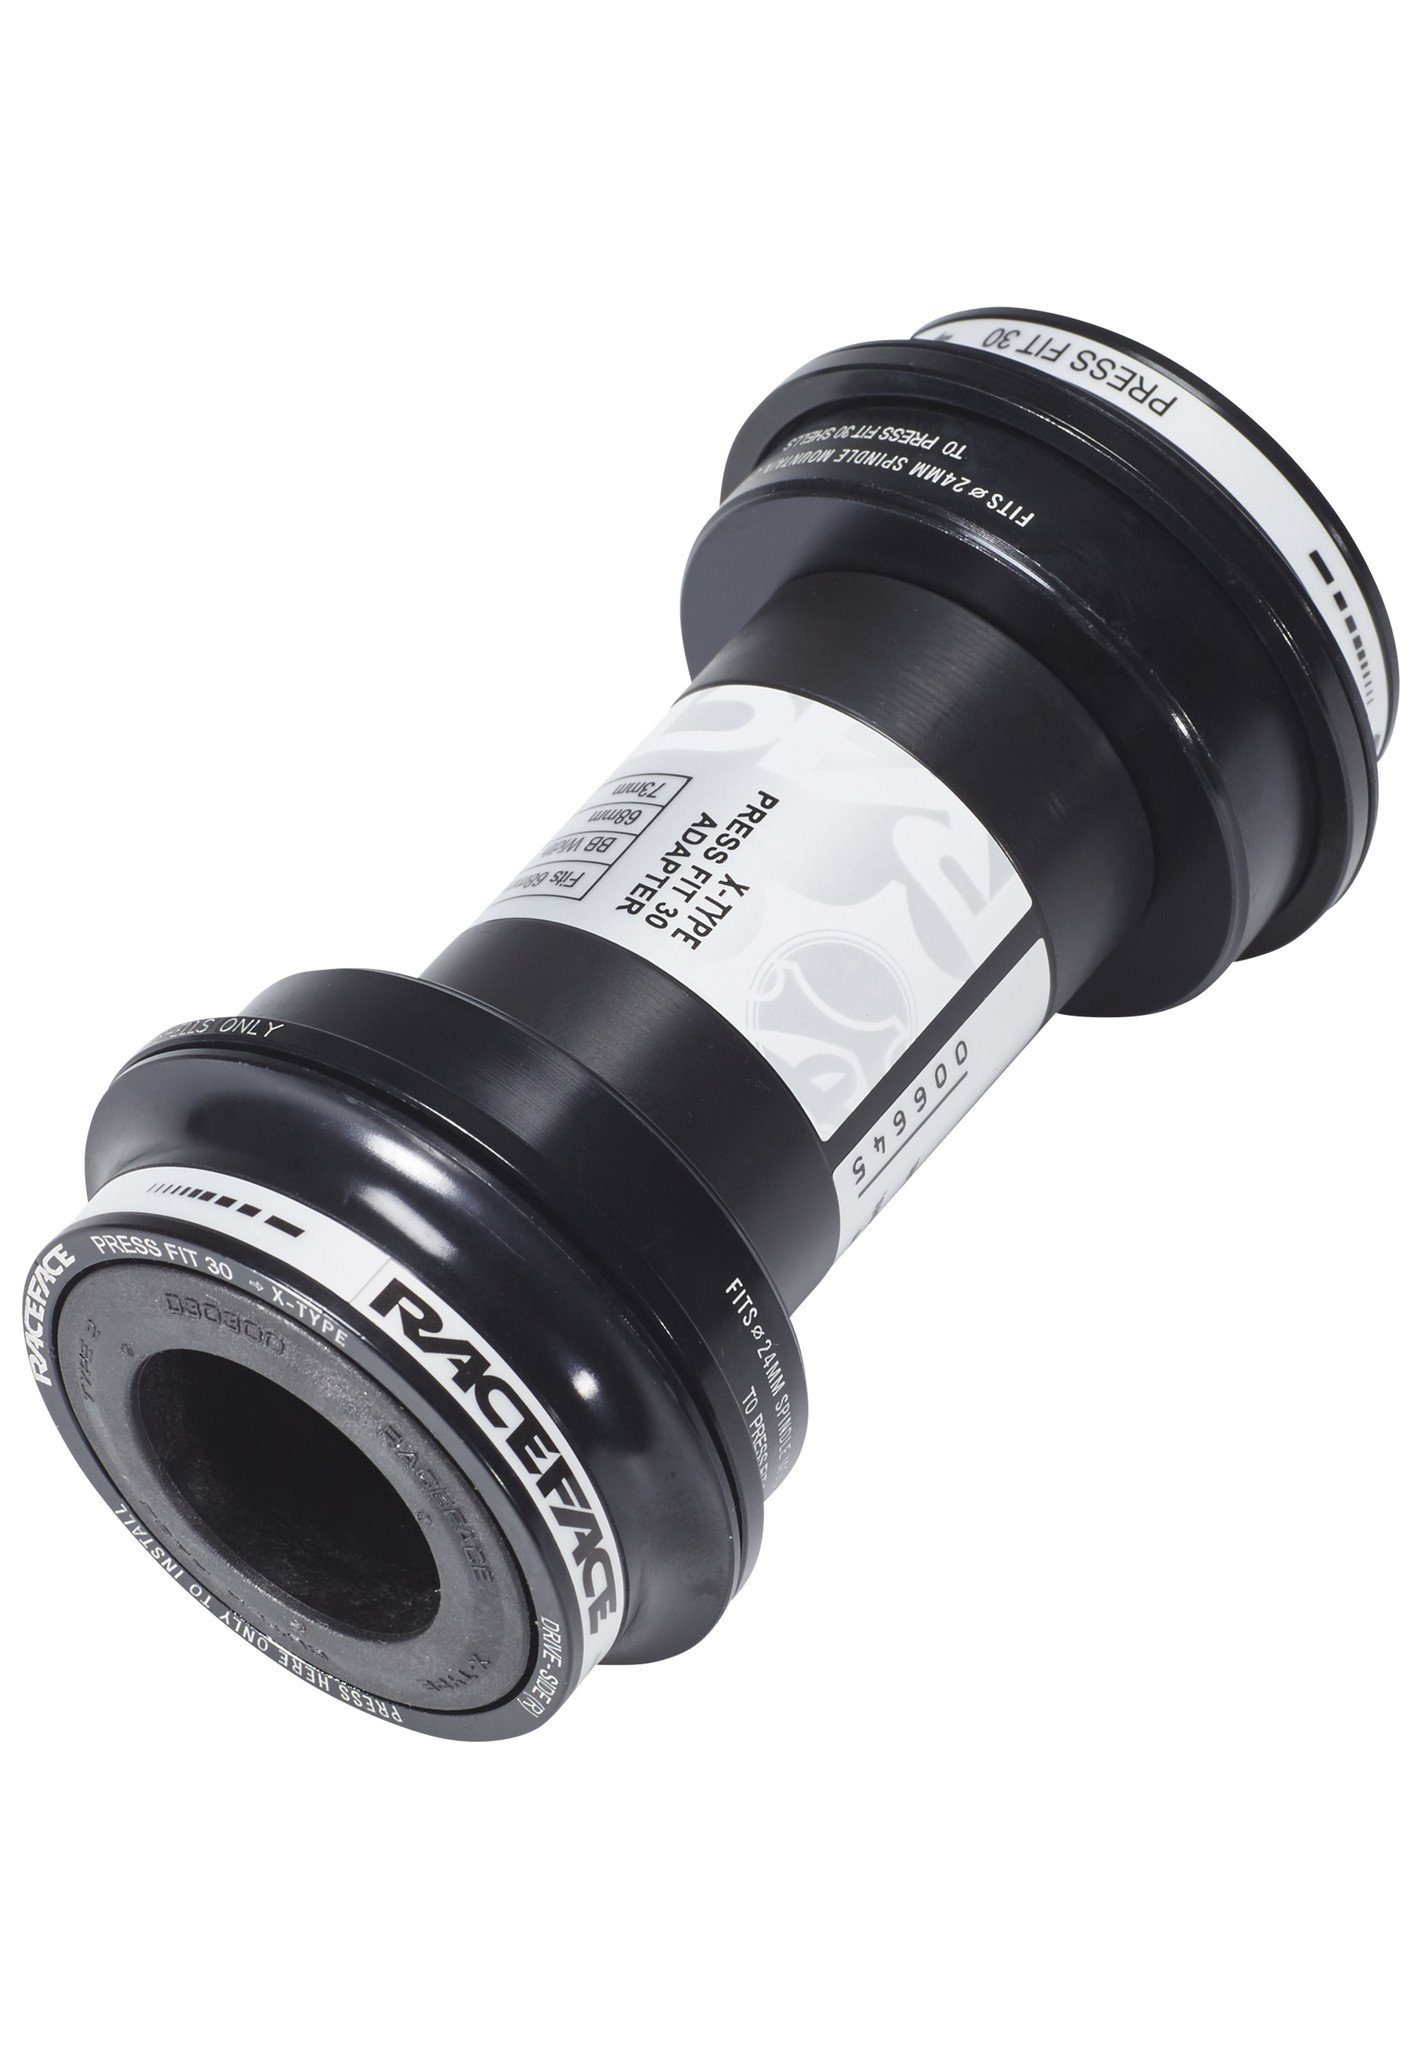 Race Face Innenlager »X-Type Innenlager Pressfit 30 Adapter 68/73mm«